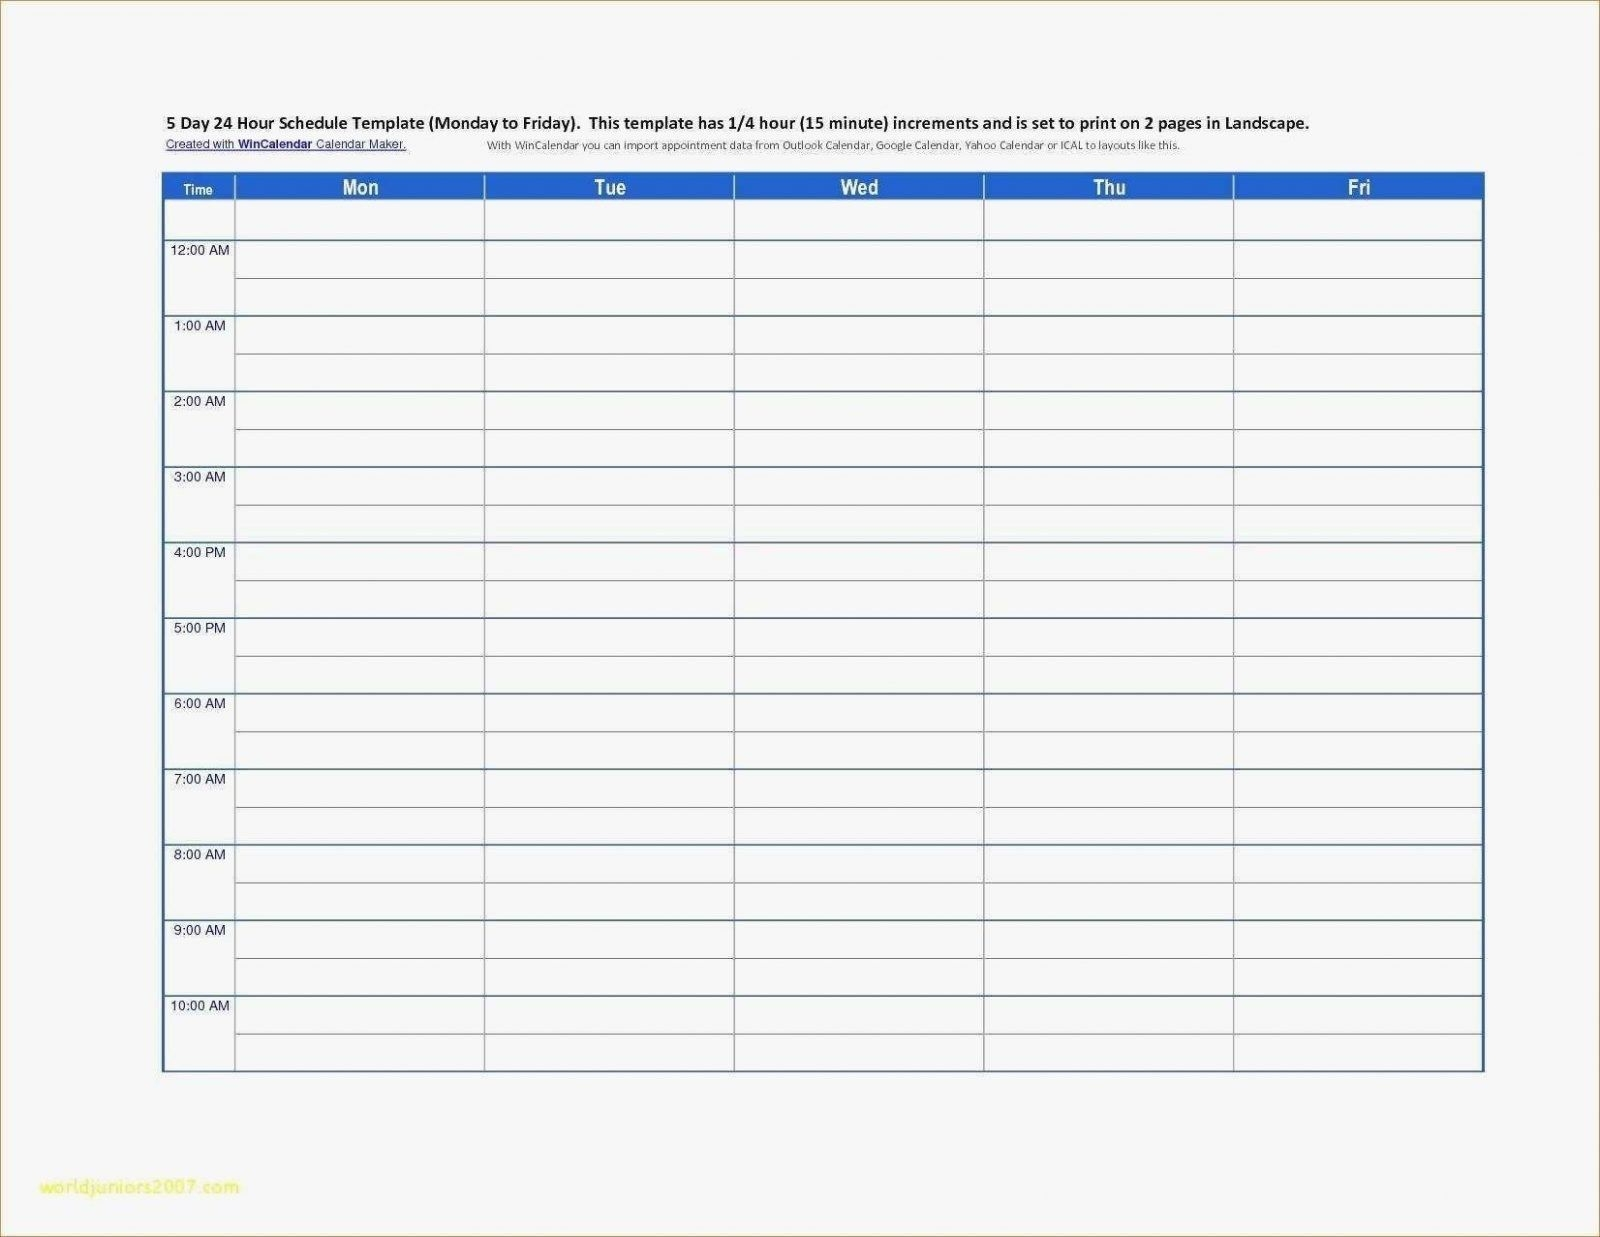 New Excel Gantt Chart Template Free (With Images) | Schedule